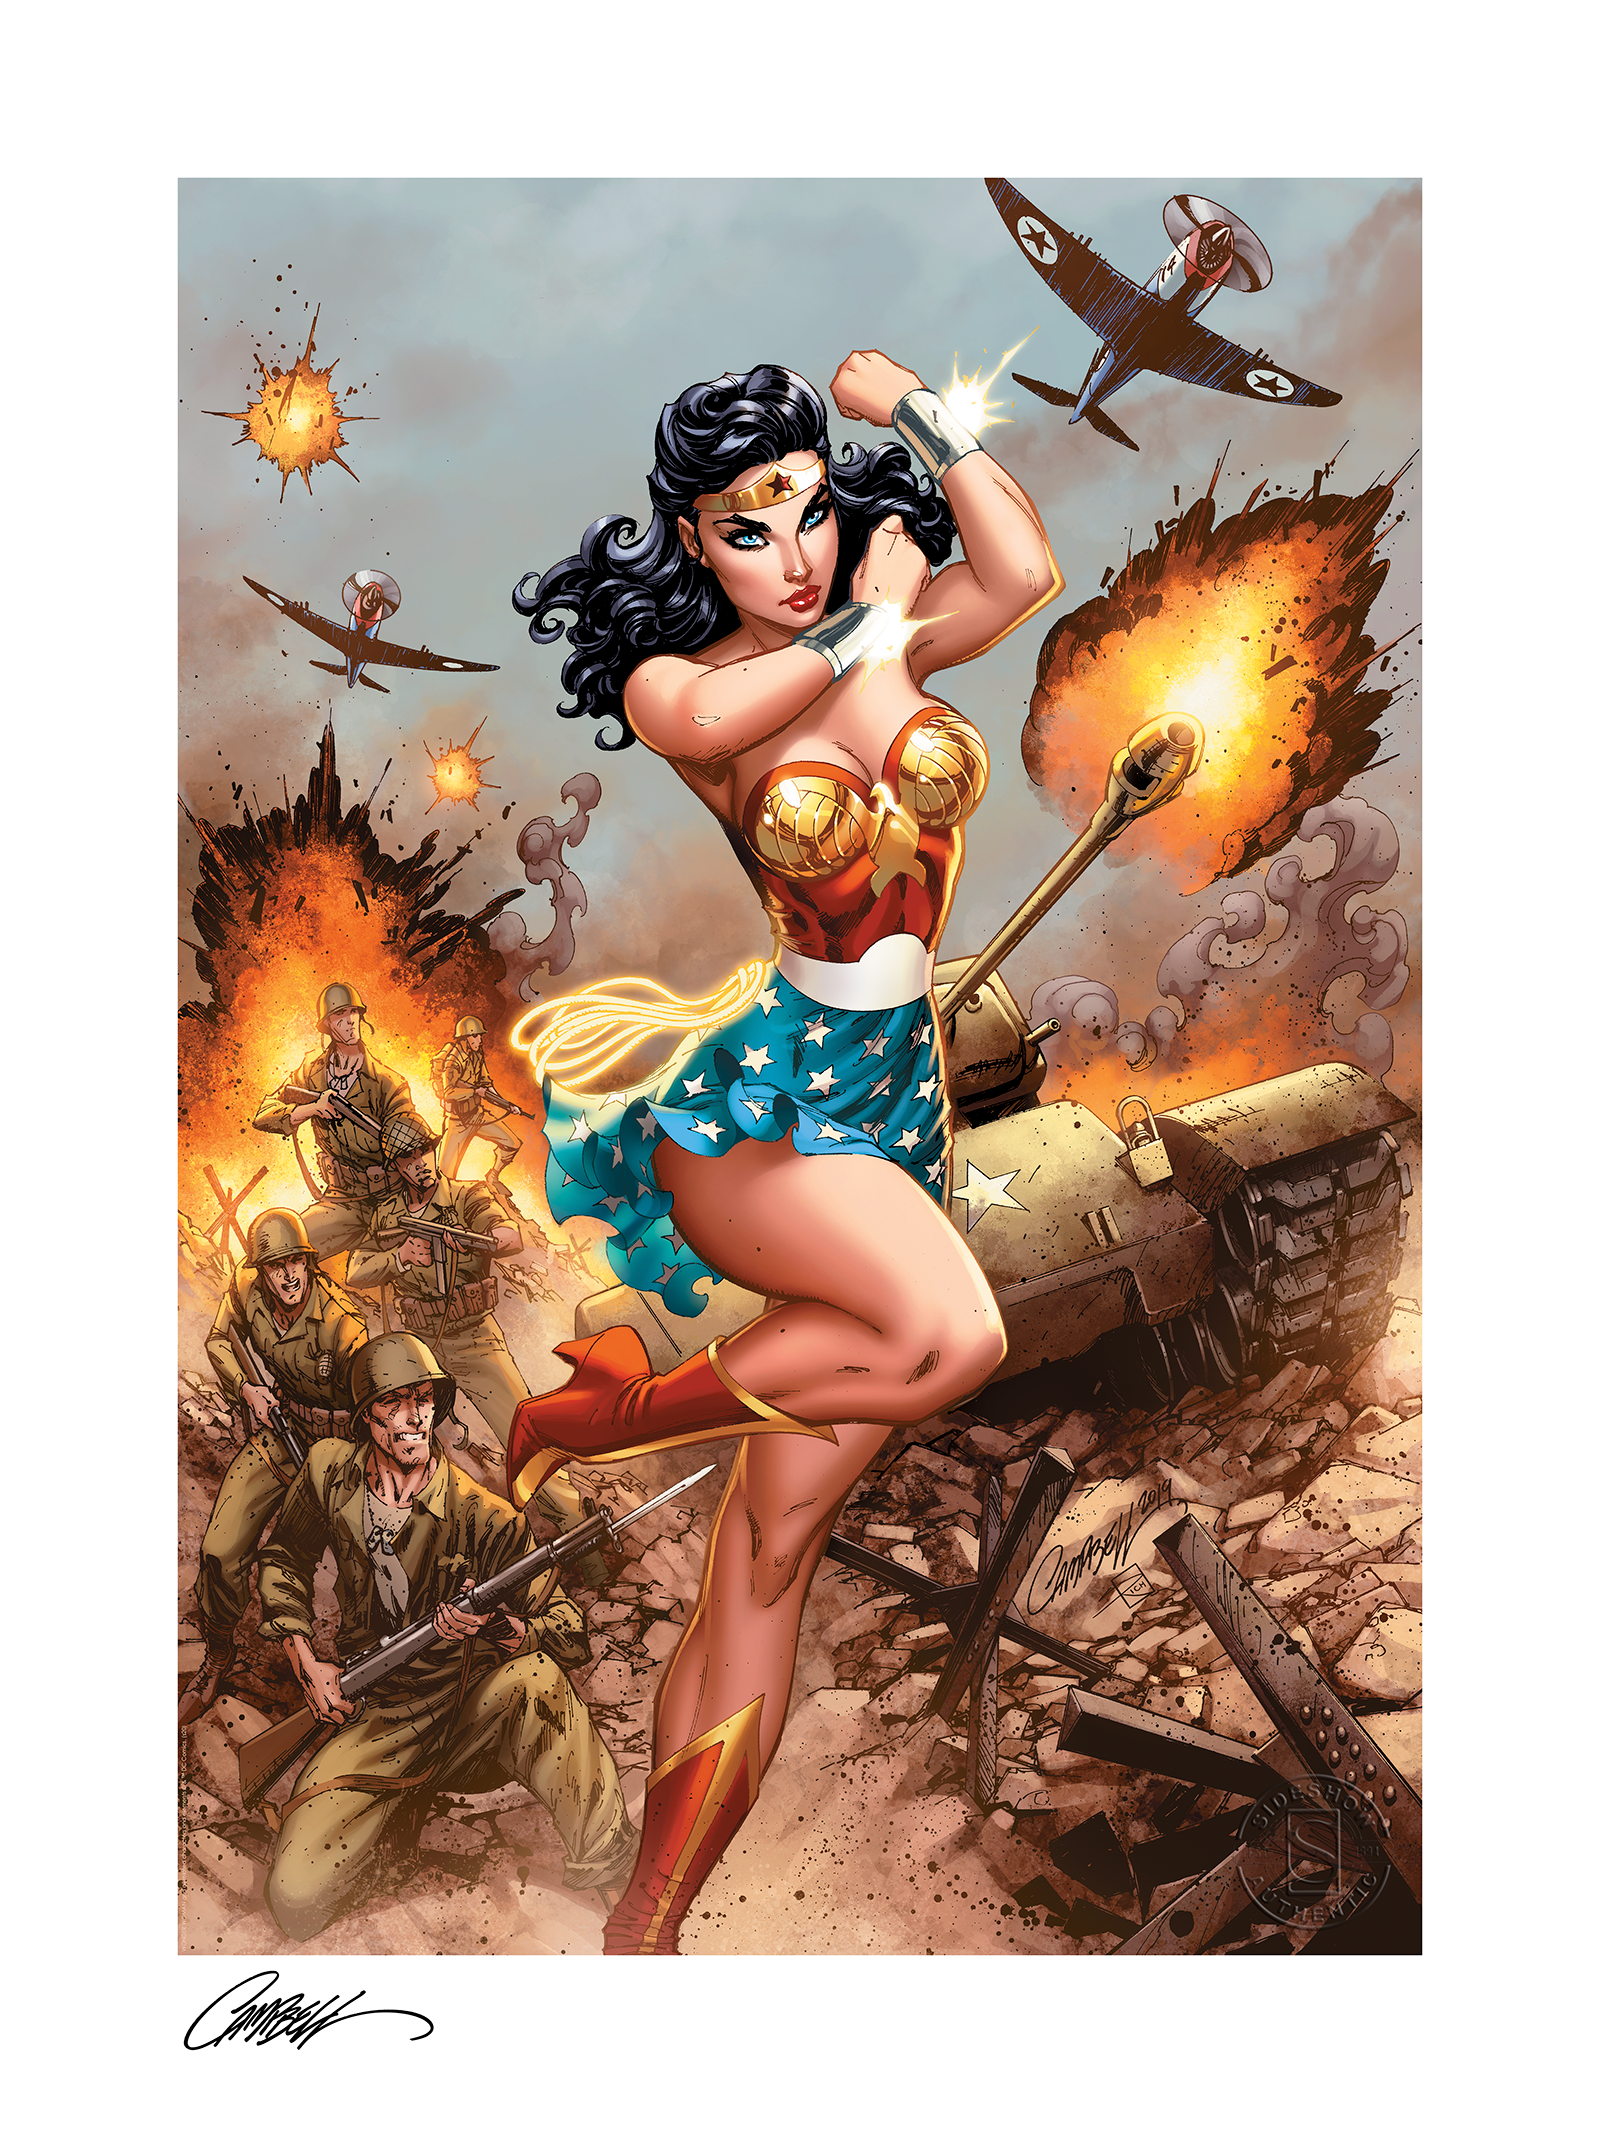 sideshow-dc-comics-wonder-woman-#750-ww2-unframed-art-print-by-j.s.-campbell-toyslife